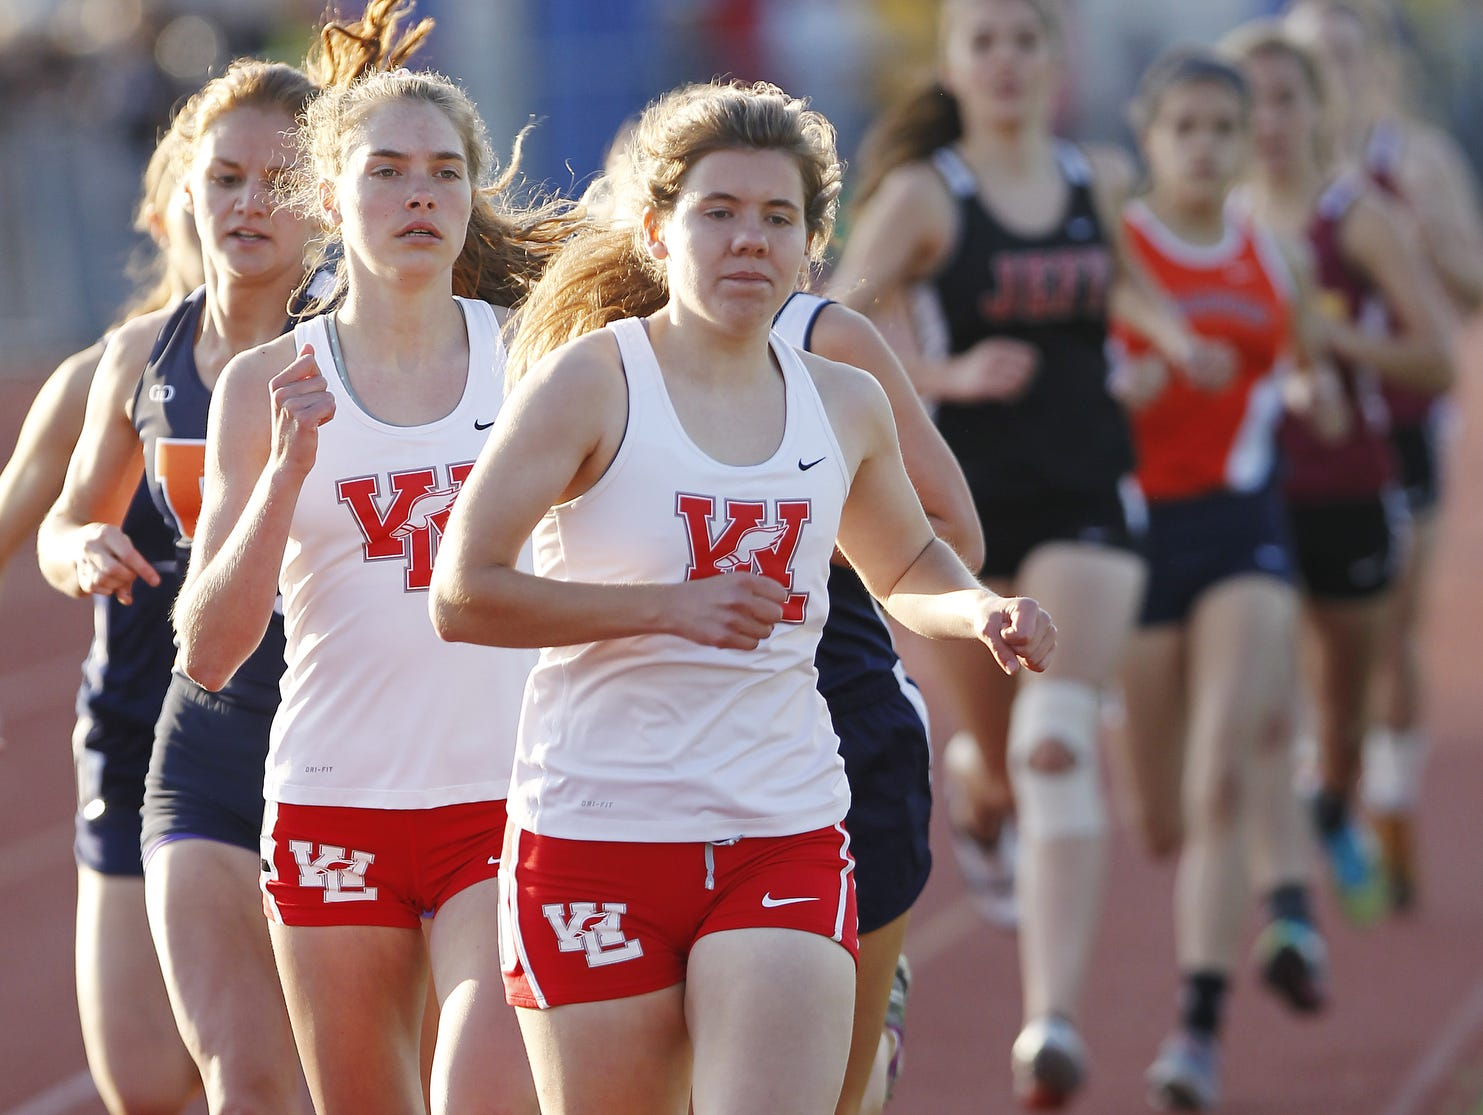 Action from the 800 meter run during the girls track sectional Tuesday, May 19, 2015, at Harrison High School.